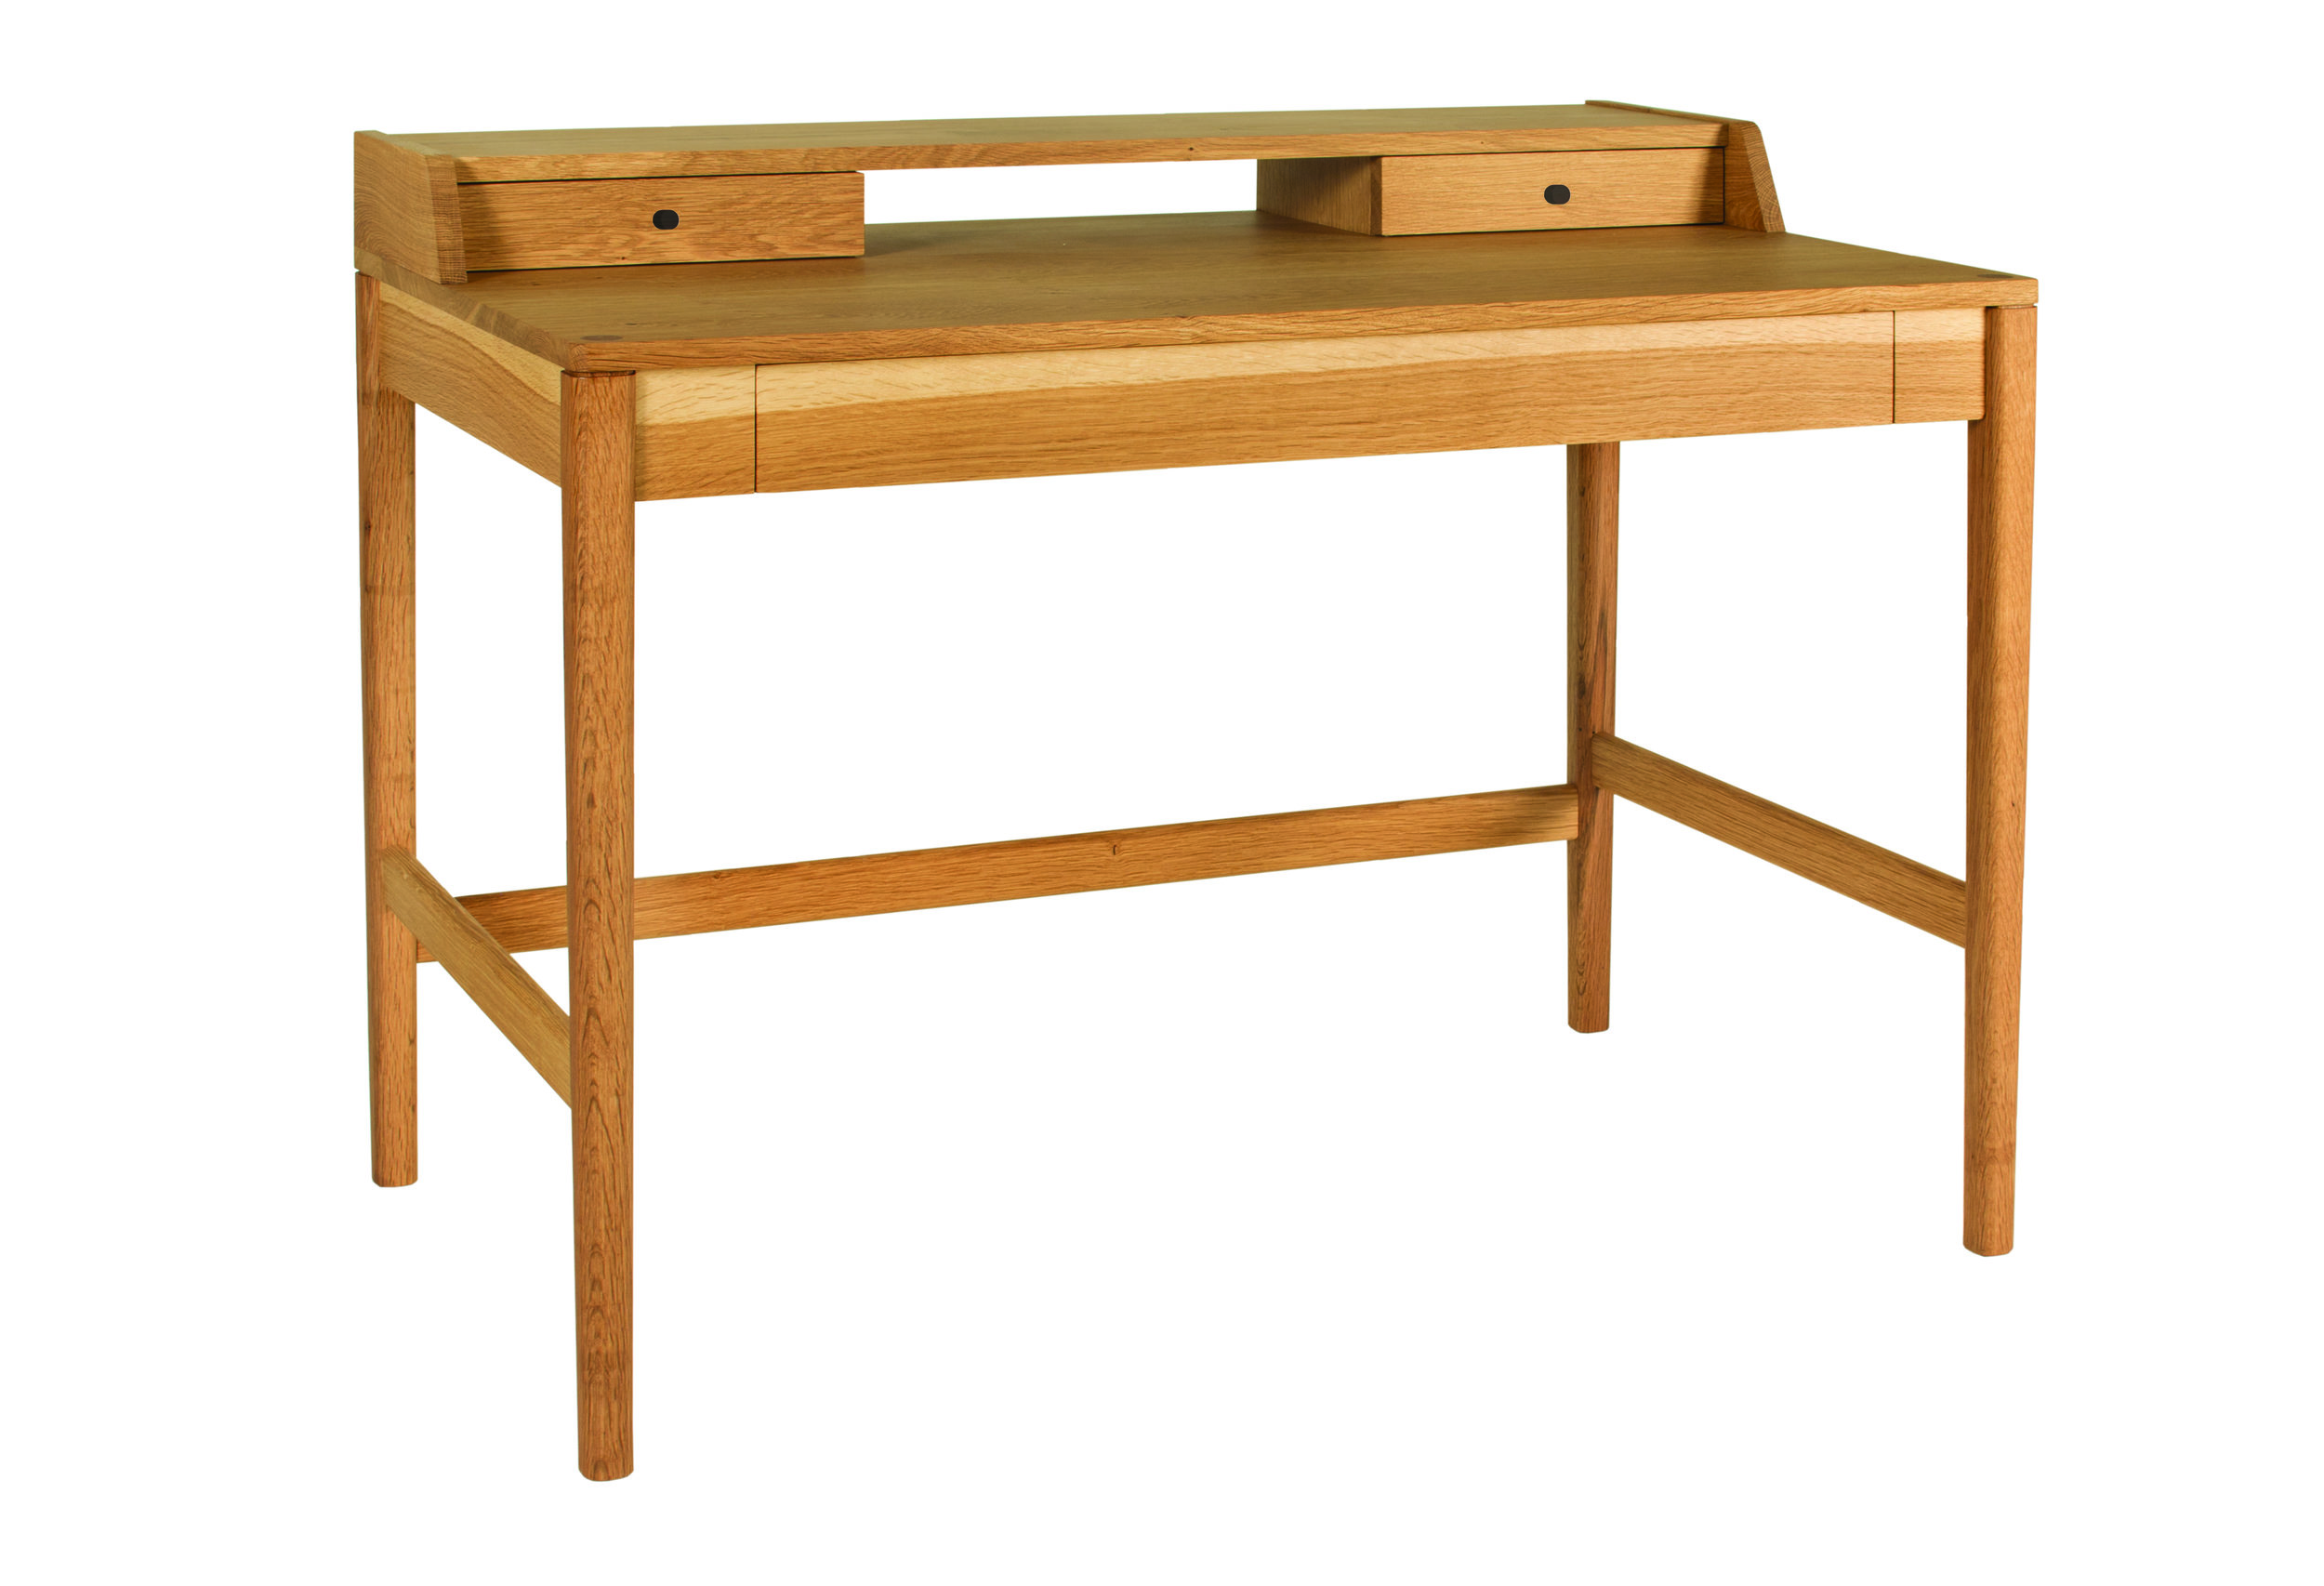 The Joinery_Maud Desk.jpg